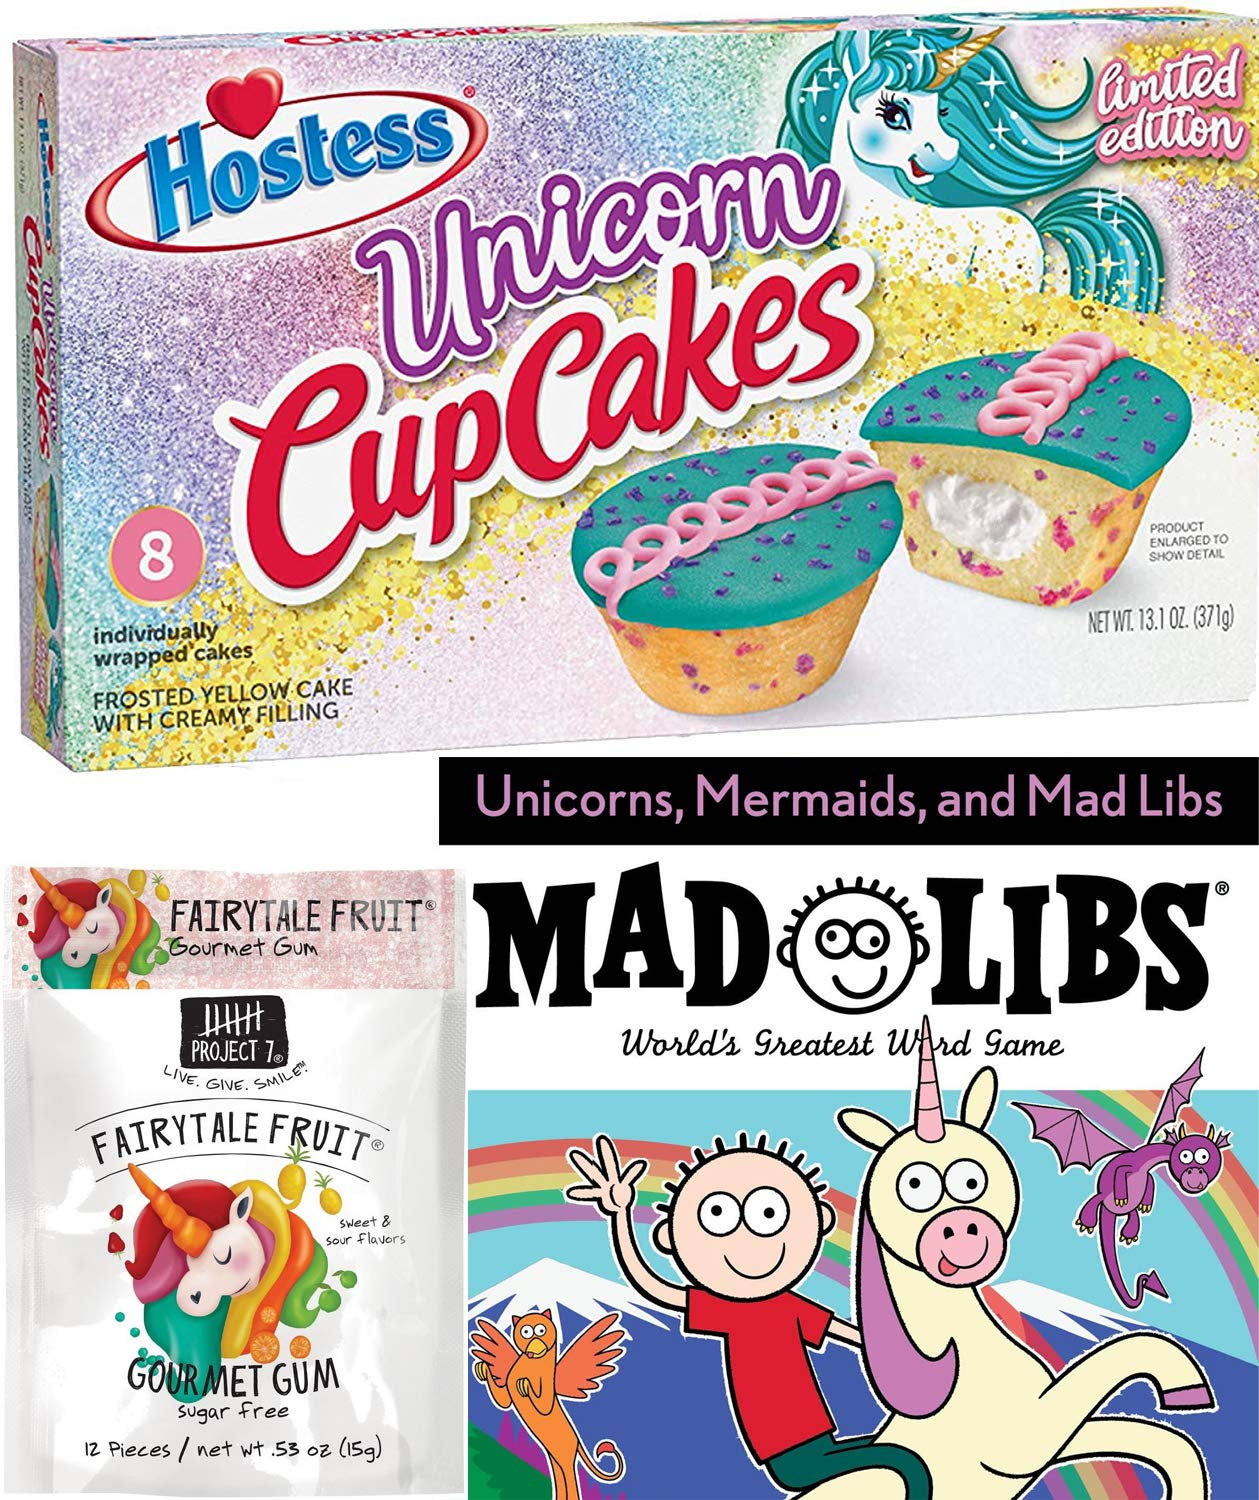 Frosted Unicorn Cupcake Exclusive Edition Bundled with Magical Fantasy Unicorn Mad Word Game Libs Book Fun & Fairytale Fruit Sweet Treat 3 pack by Hostess